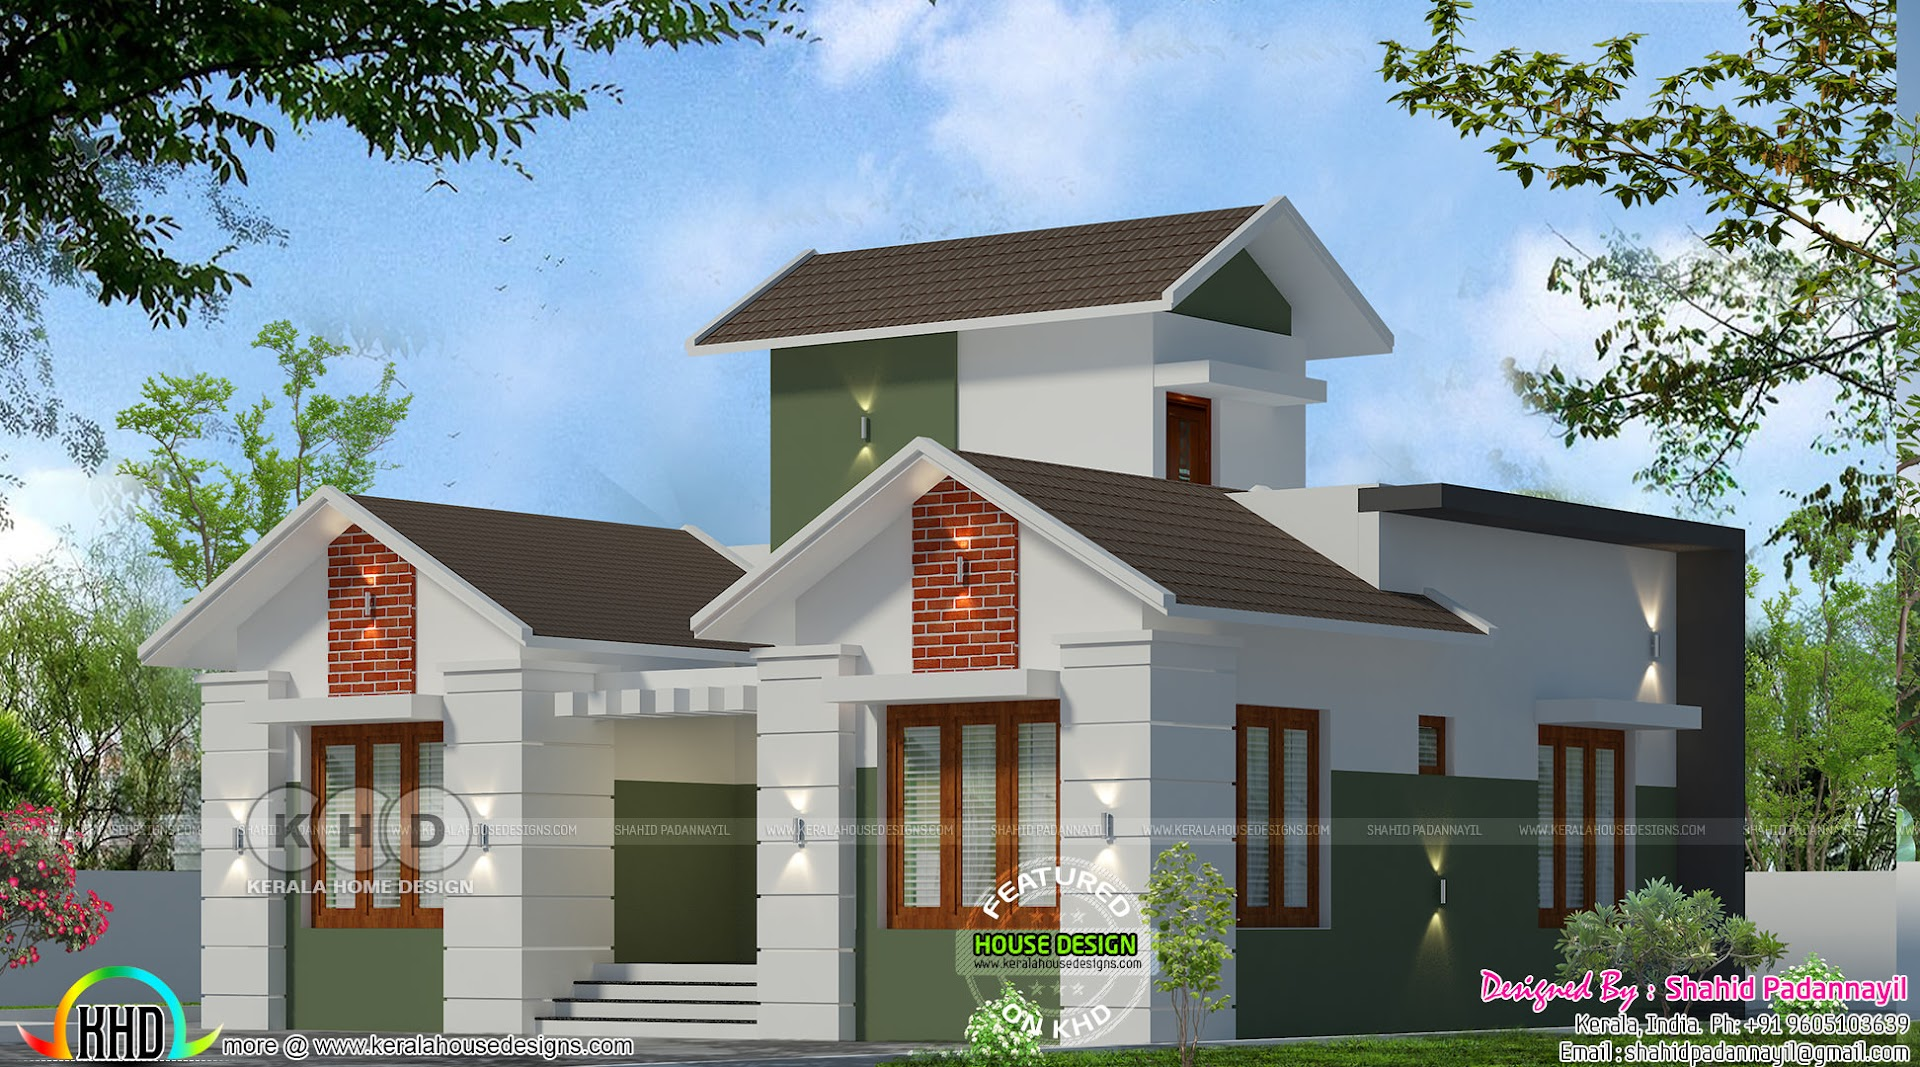 1130 Square Feet 2 Bhk Home With Stair Room Kerala Home Design Bloglovin